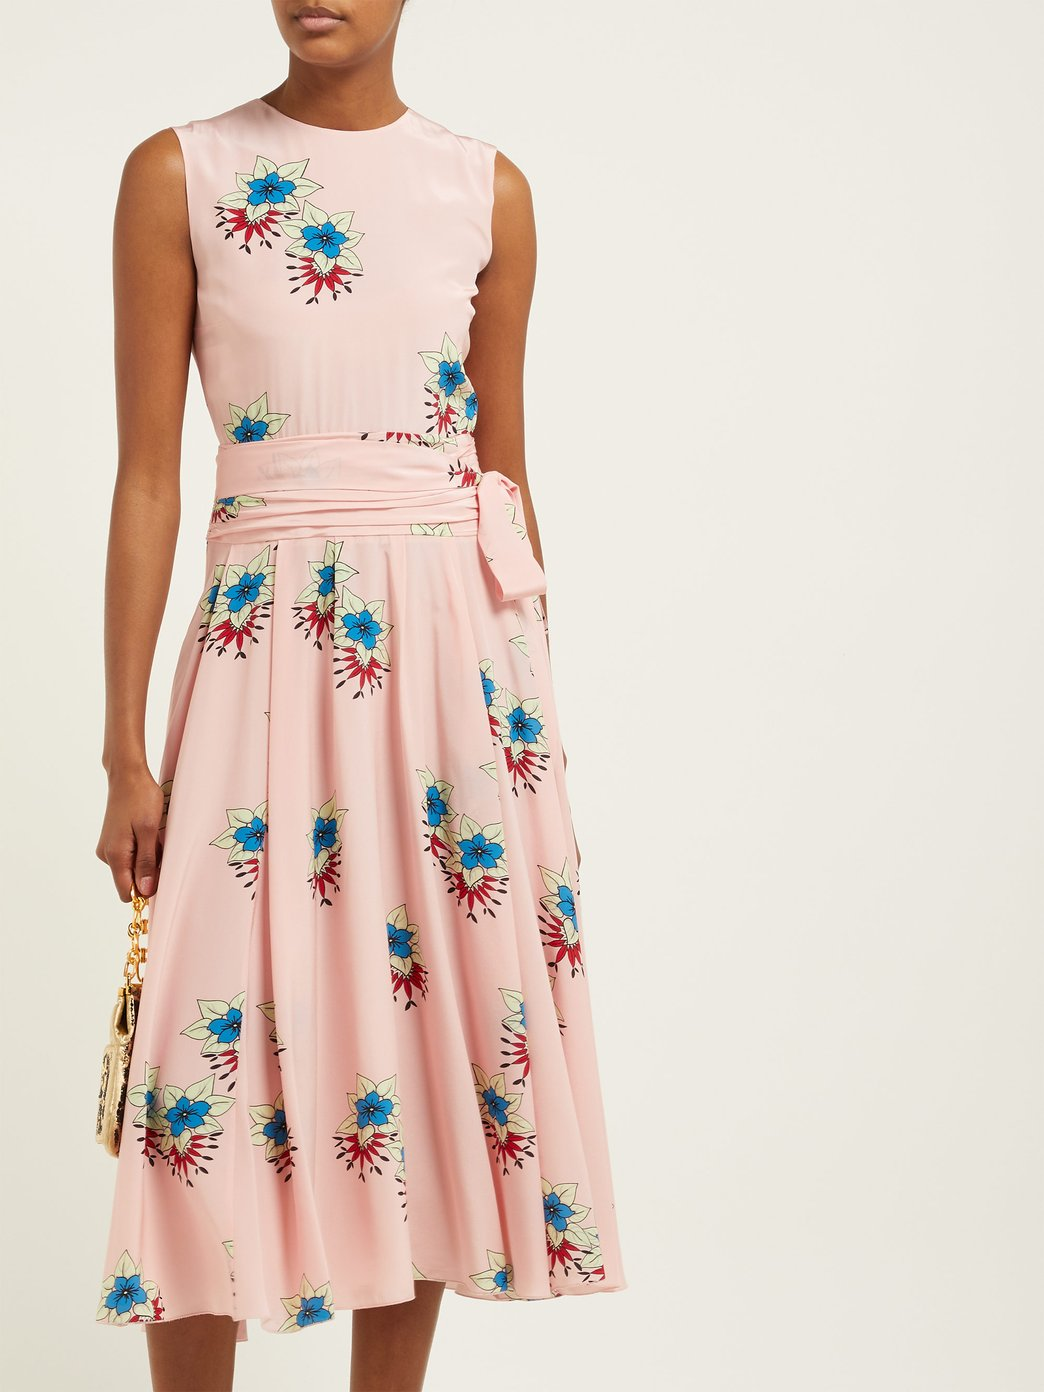 spring bridal shower dress floral print silk midi with bow